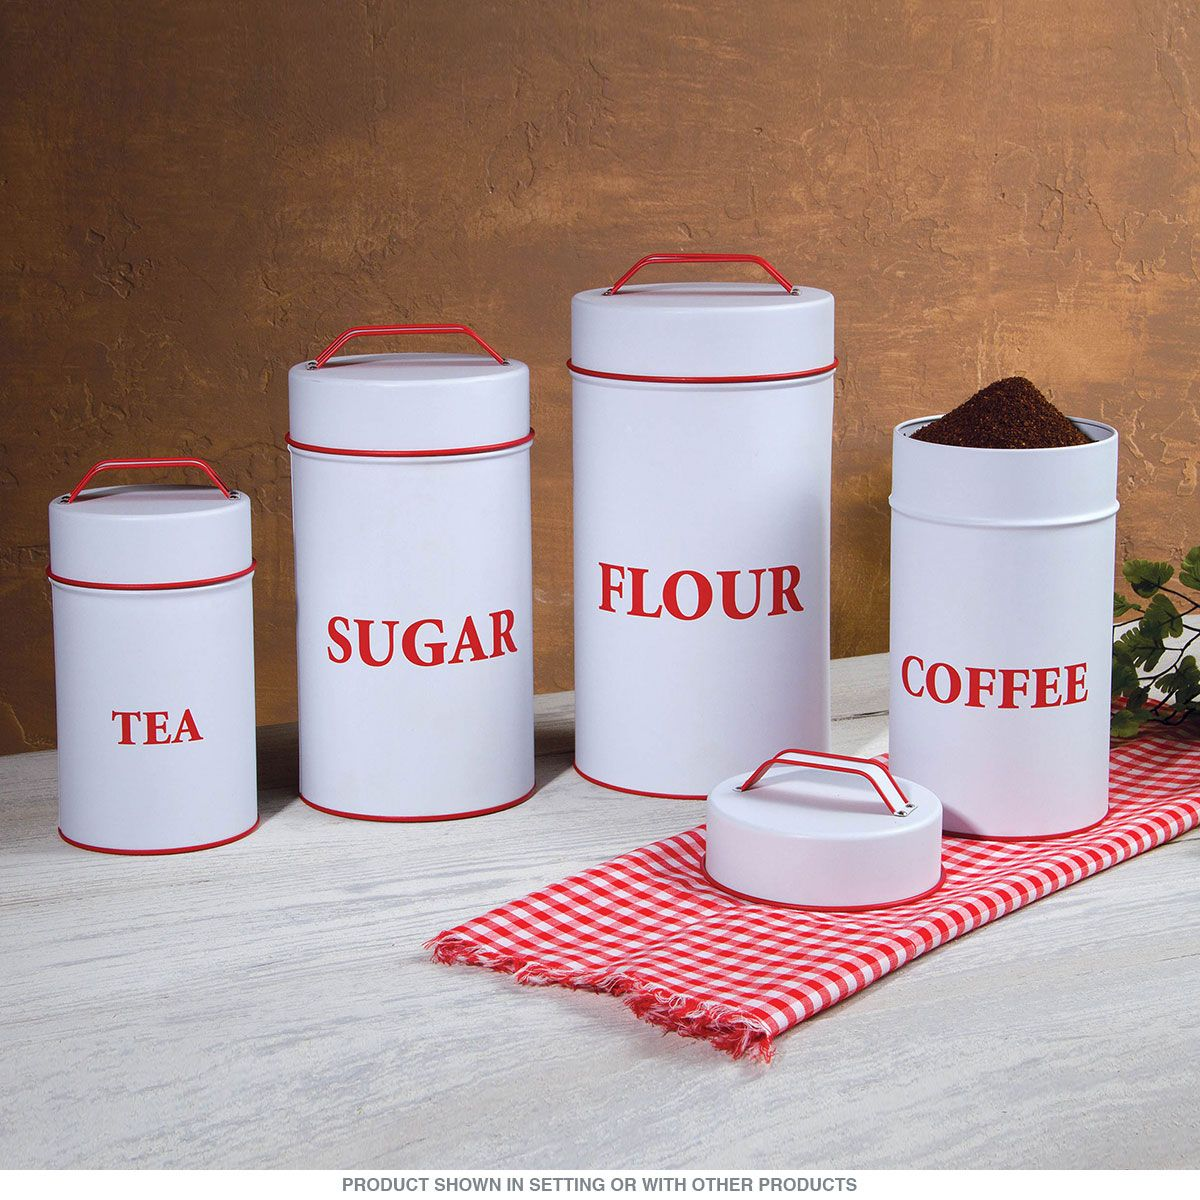 Put a lid on your kitchen essentials with retro style! This set of ...